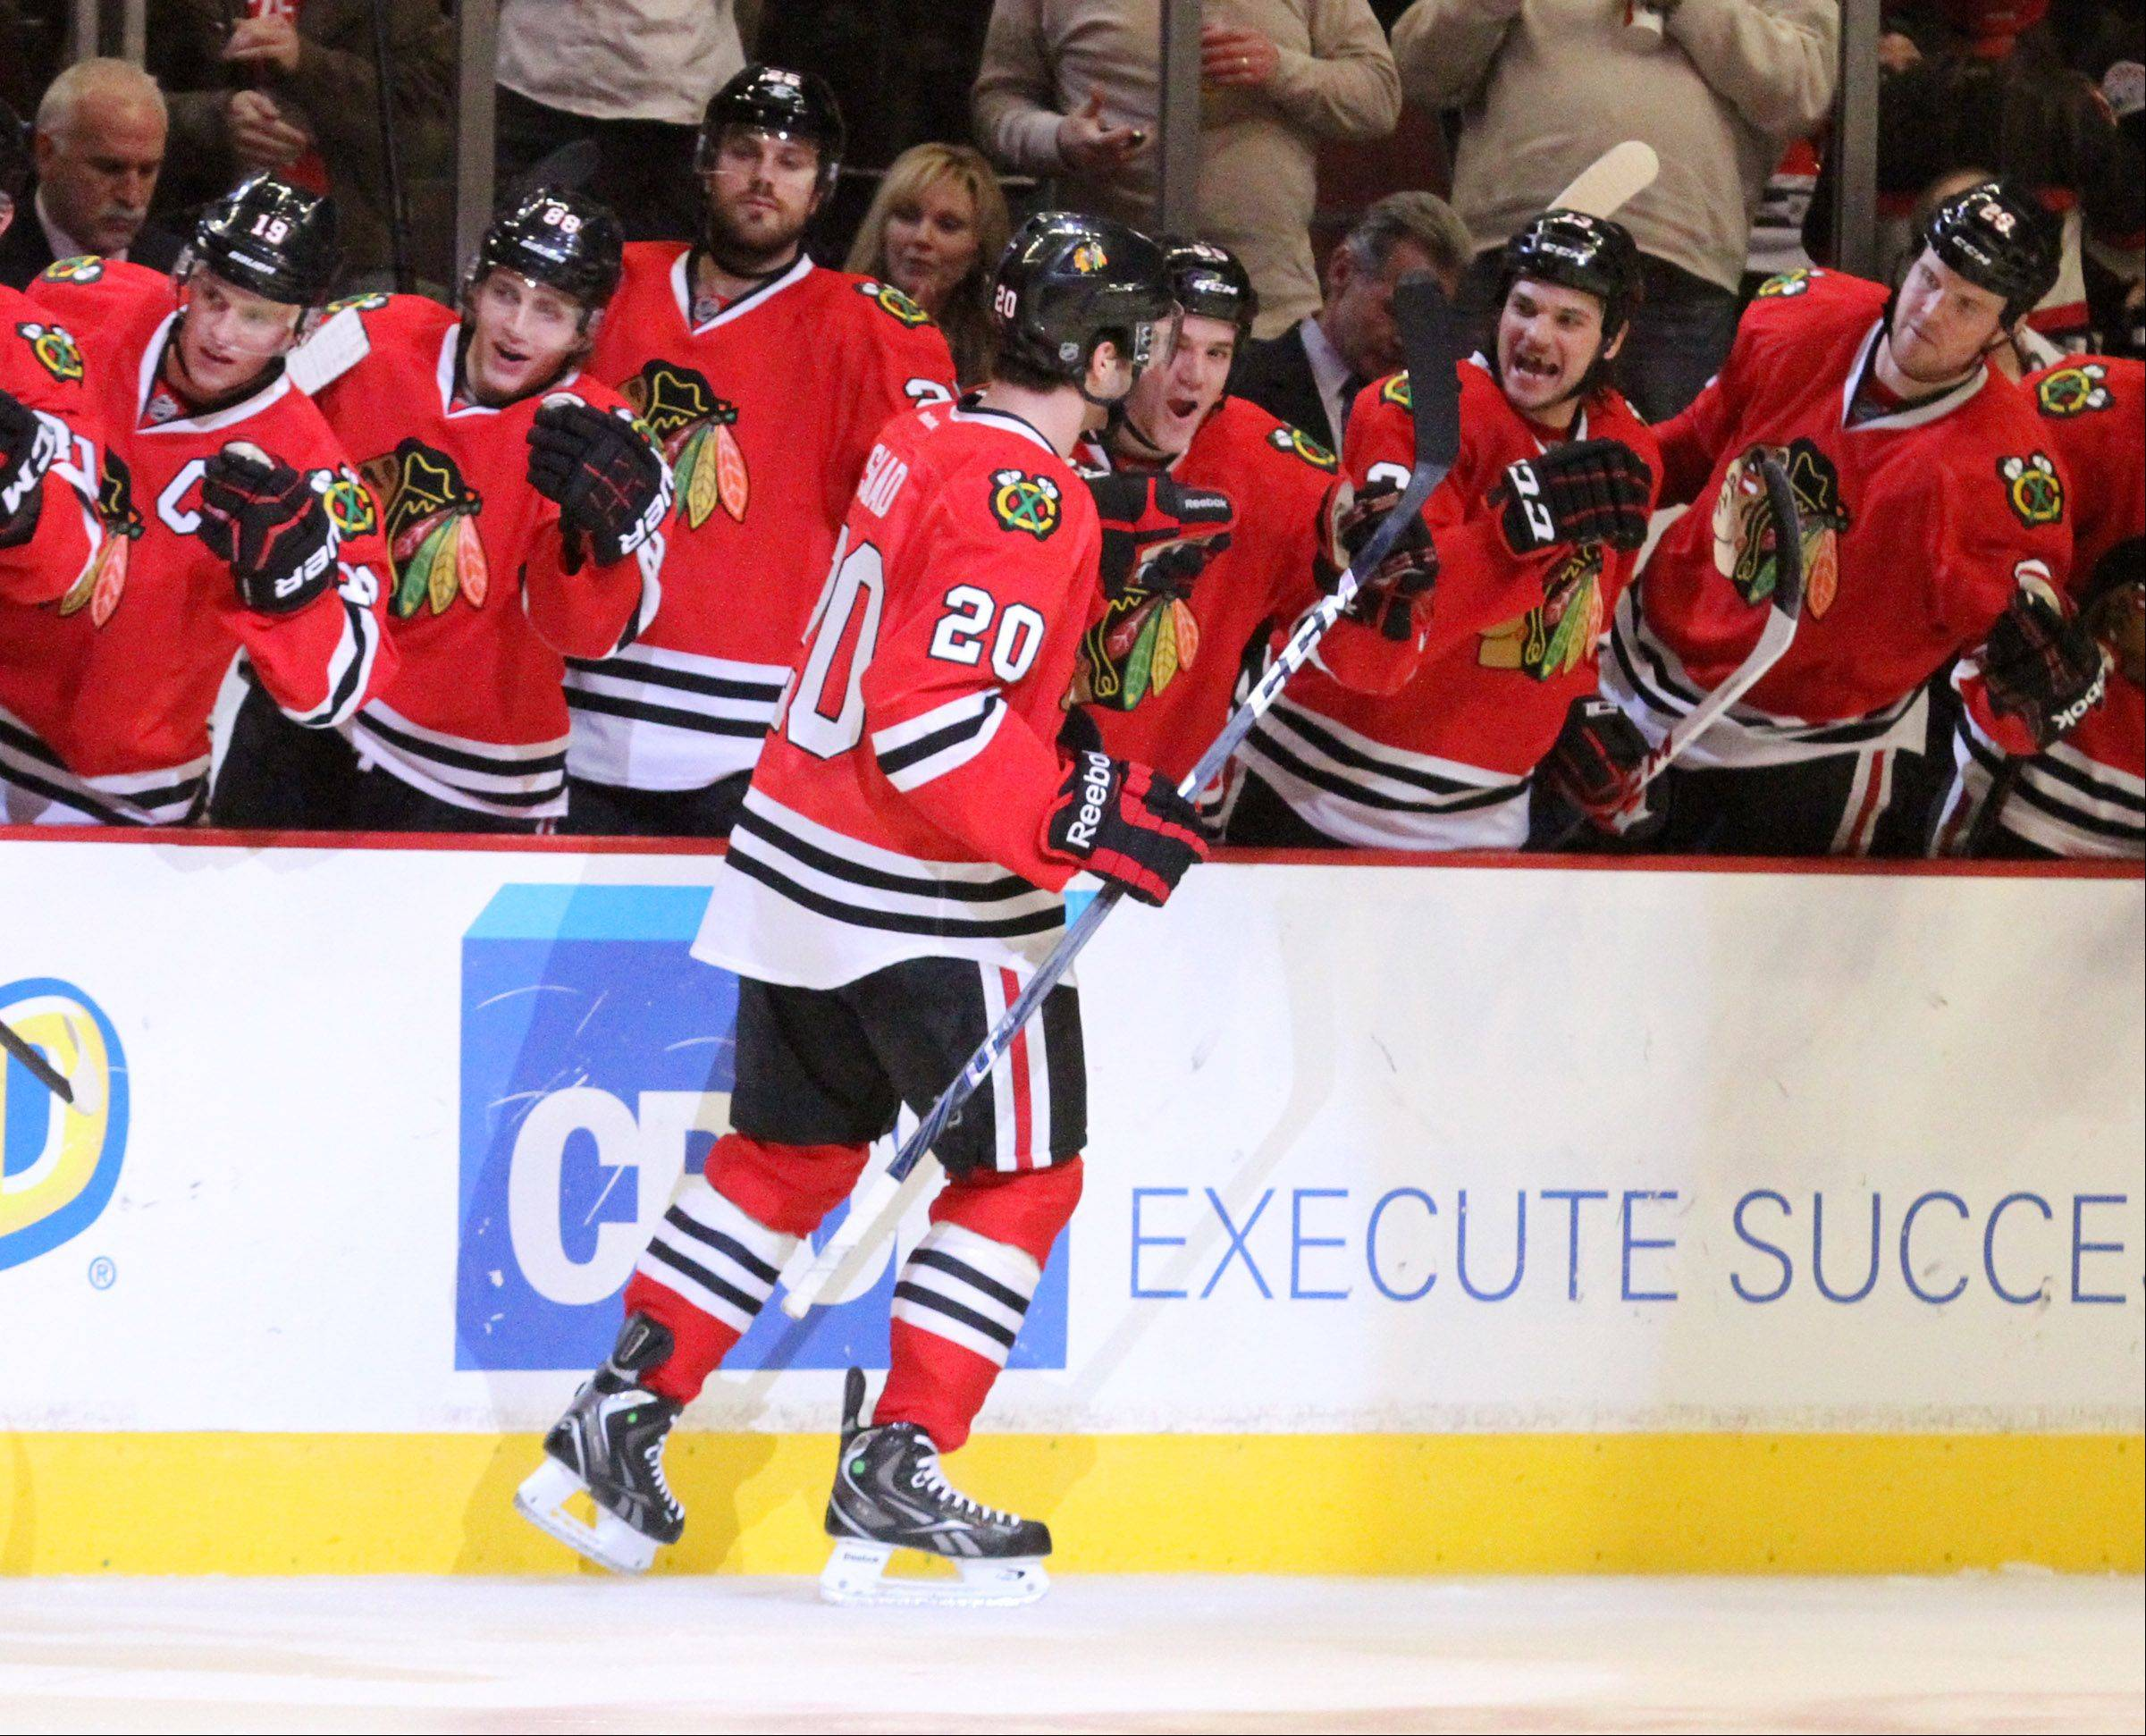 The bench gives Chicago Blackhawks left wing Brandon Saad a hand after Saad scored the second goal in the 3rd period as the Blackhawks win 2-1 against the San Jose Sharks at the United Center on Friday.